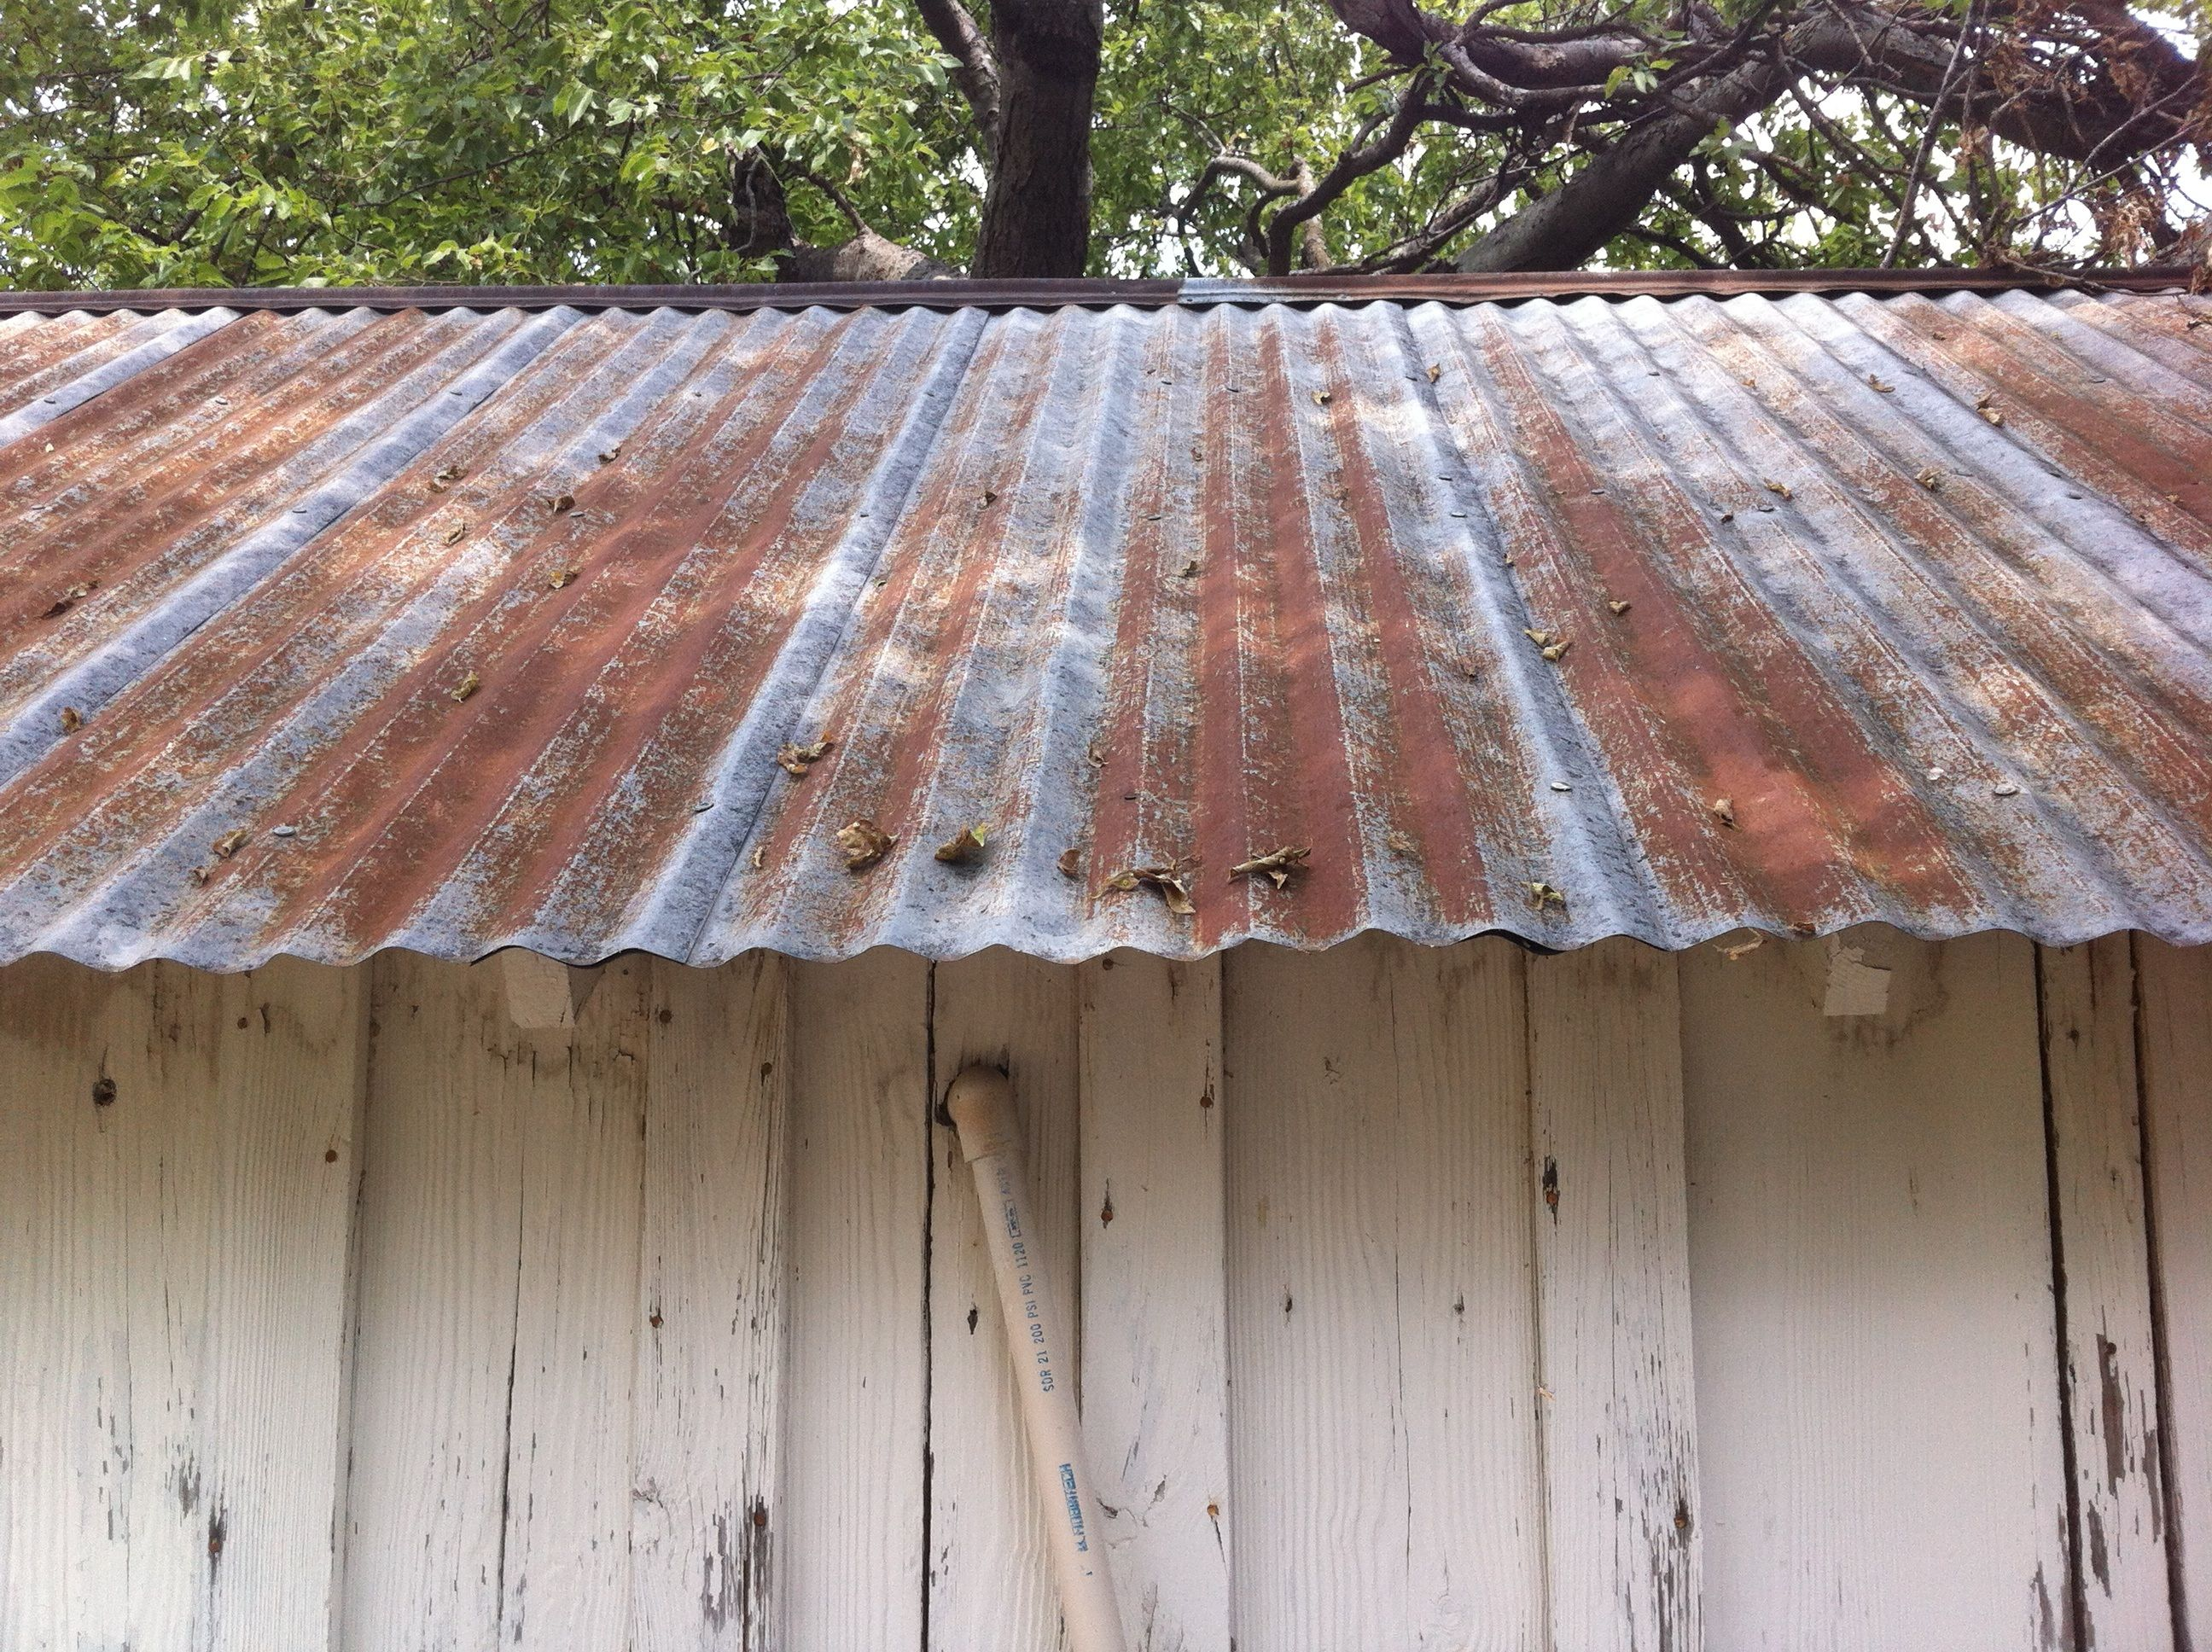 Pin By Crystal Elena Vazquez On My Children My Africa Tin Shed Corrugated Metal Roof Metal Roof Panels